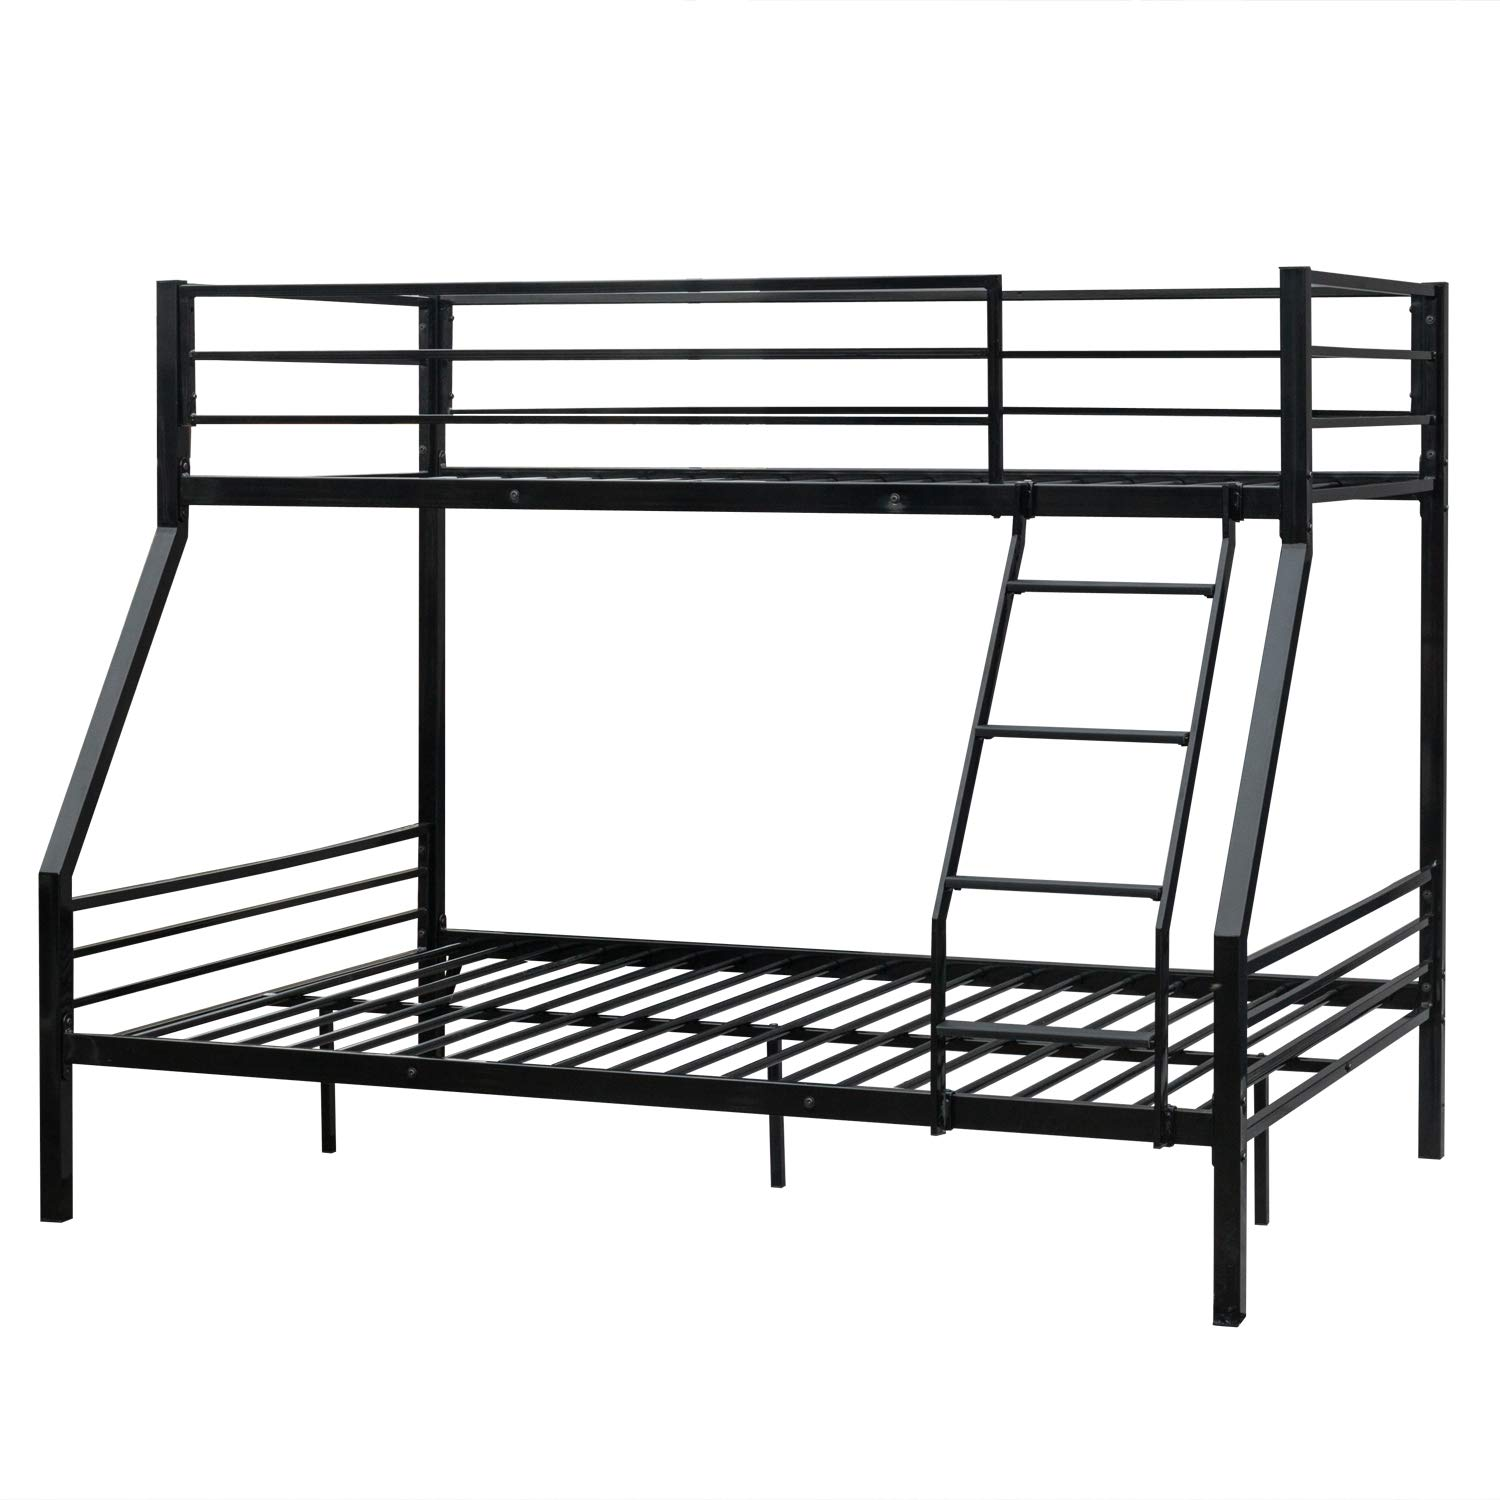 Steel Bunk Bed Twin Over Full,JULYFOX Bed Frame 580 lb Heavy Duty with Headboard Inclined Ladders Full Length Side Guard Rails No Box Spring Needed Platform Bed for Kids Teens Juniors Adults-Black